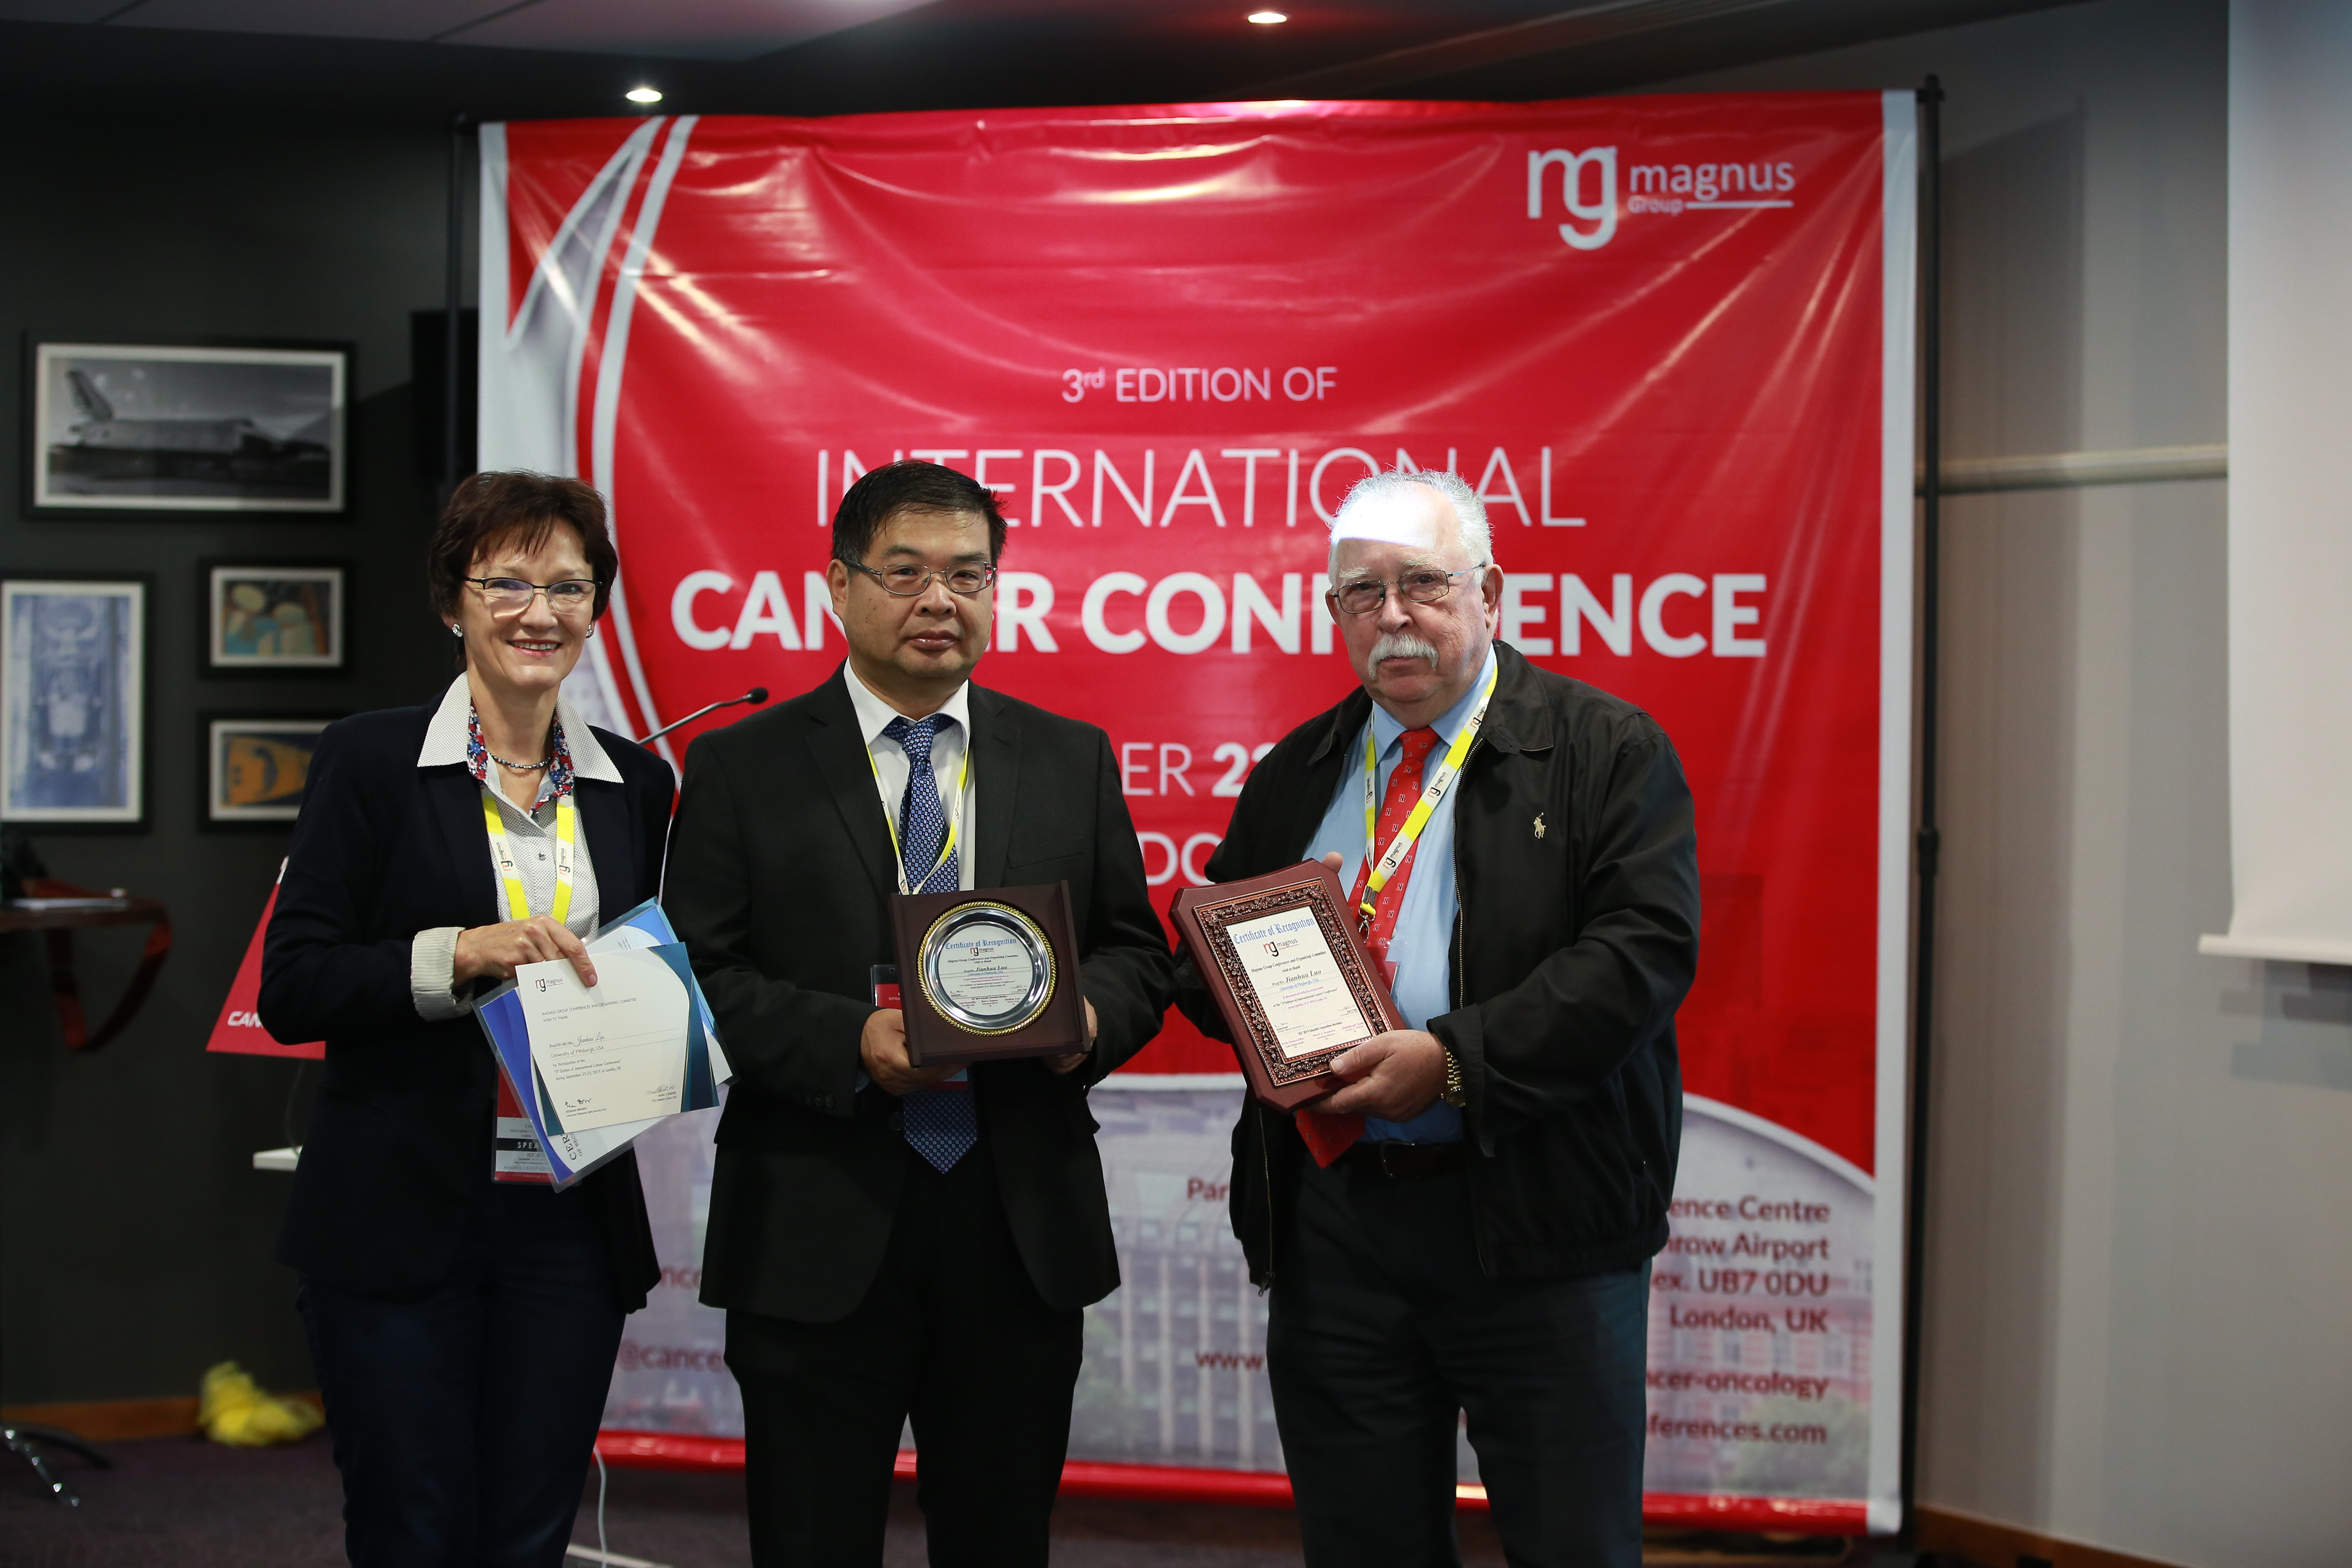 Leading Speaker for Cancer Conferences - Jianhua Luo